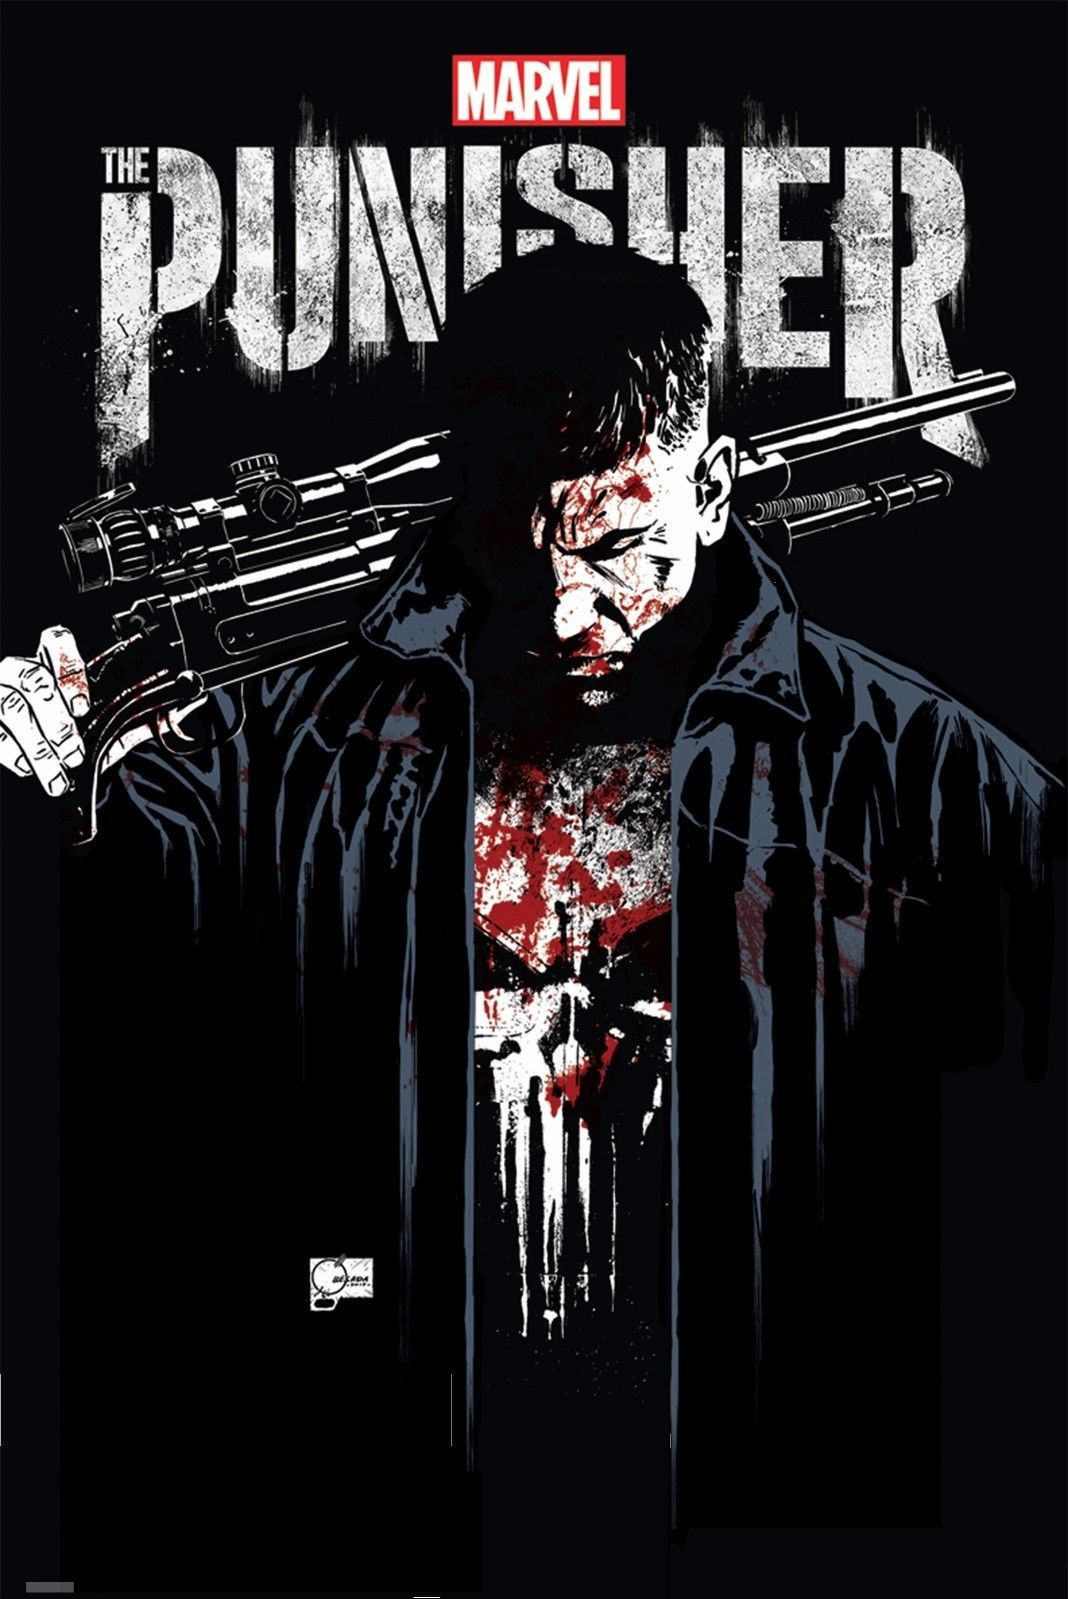 Marvel's The Punisher - Série (2017) streaming VF gratuit complet